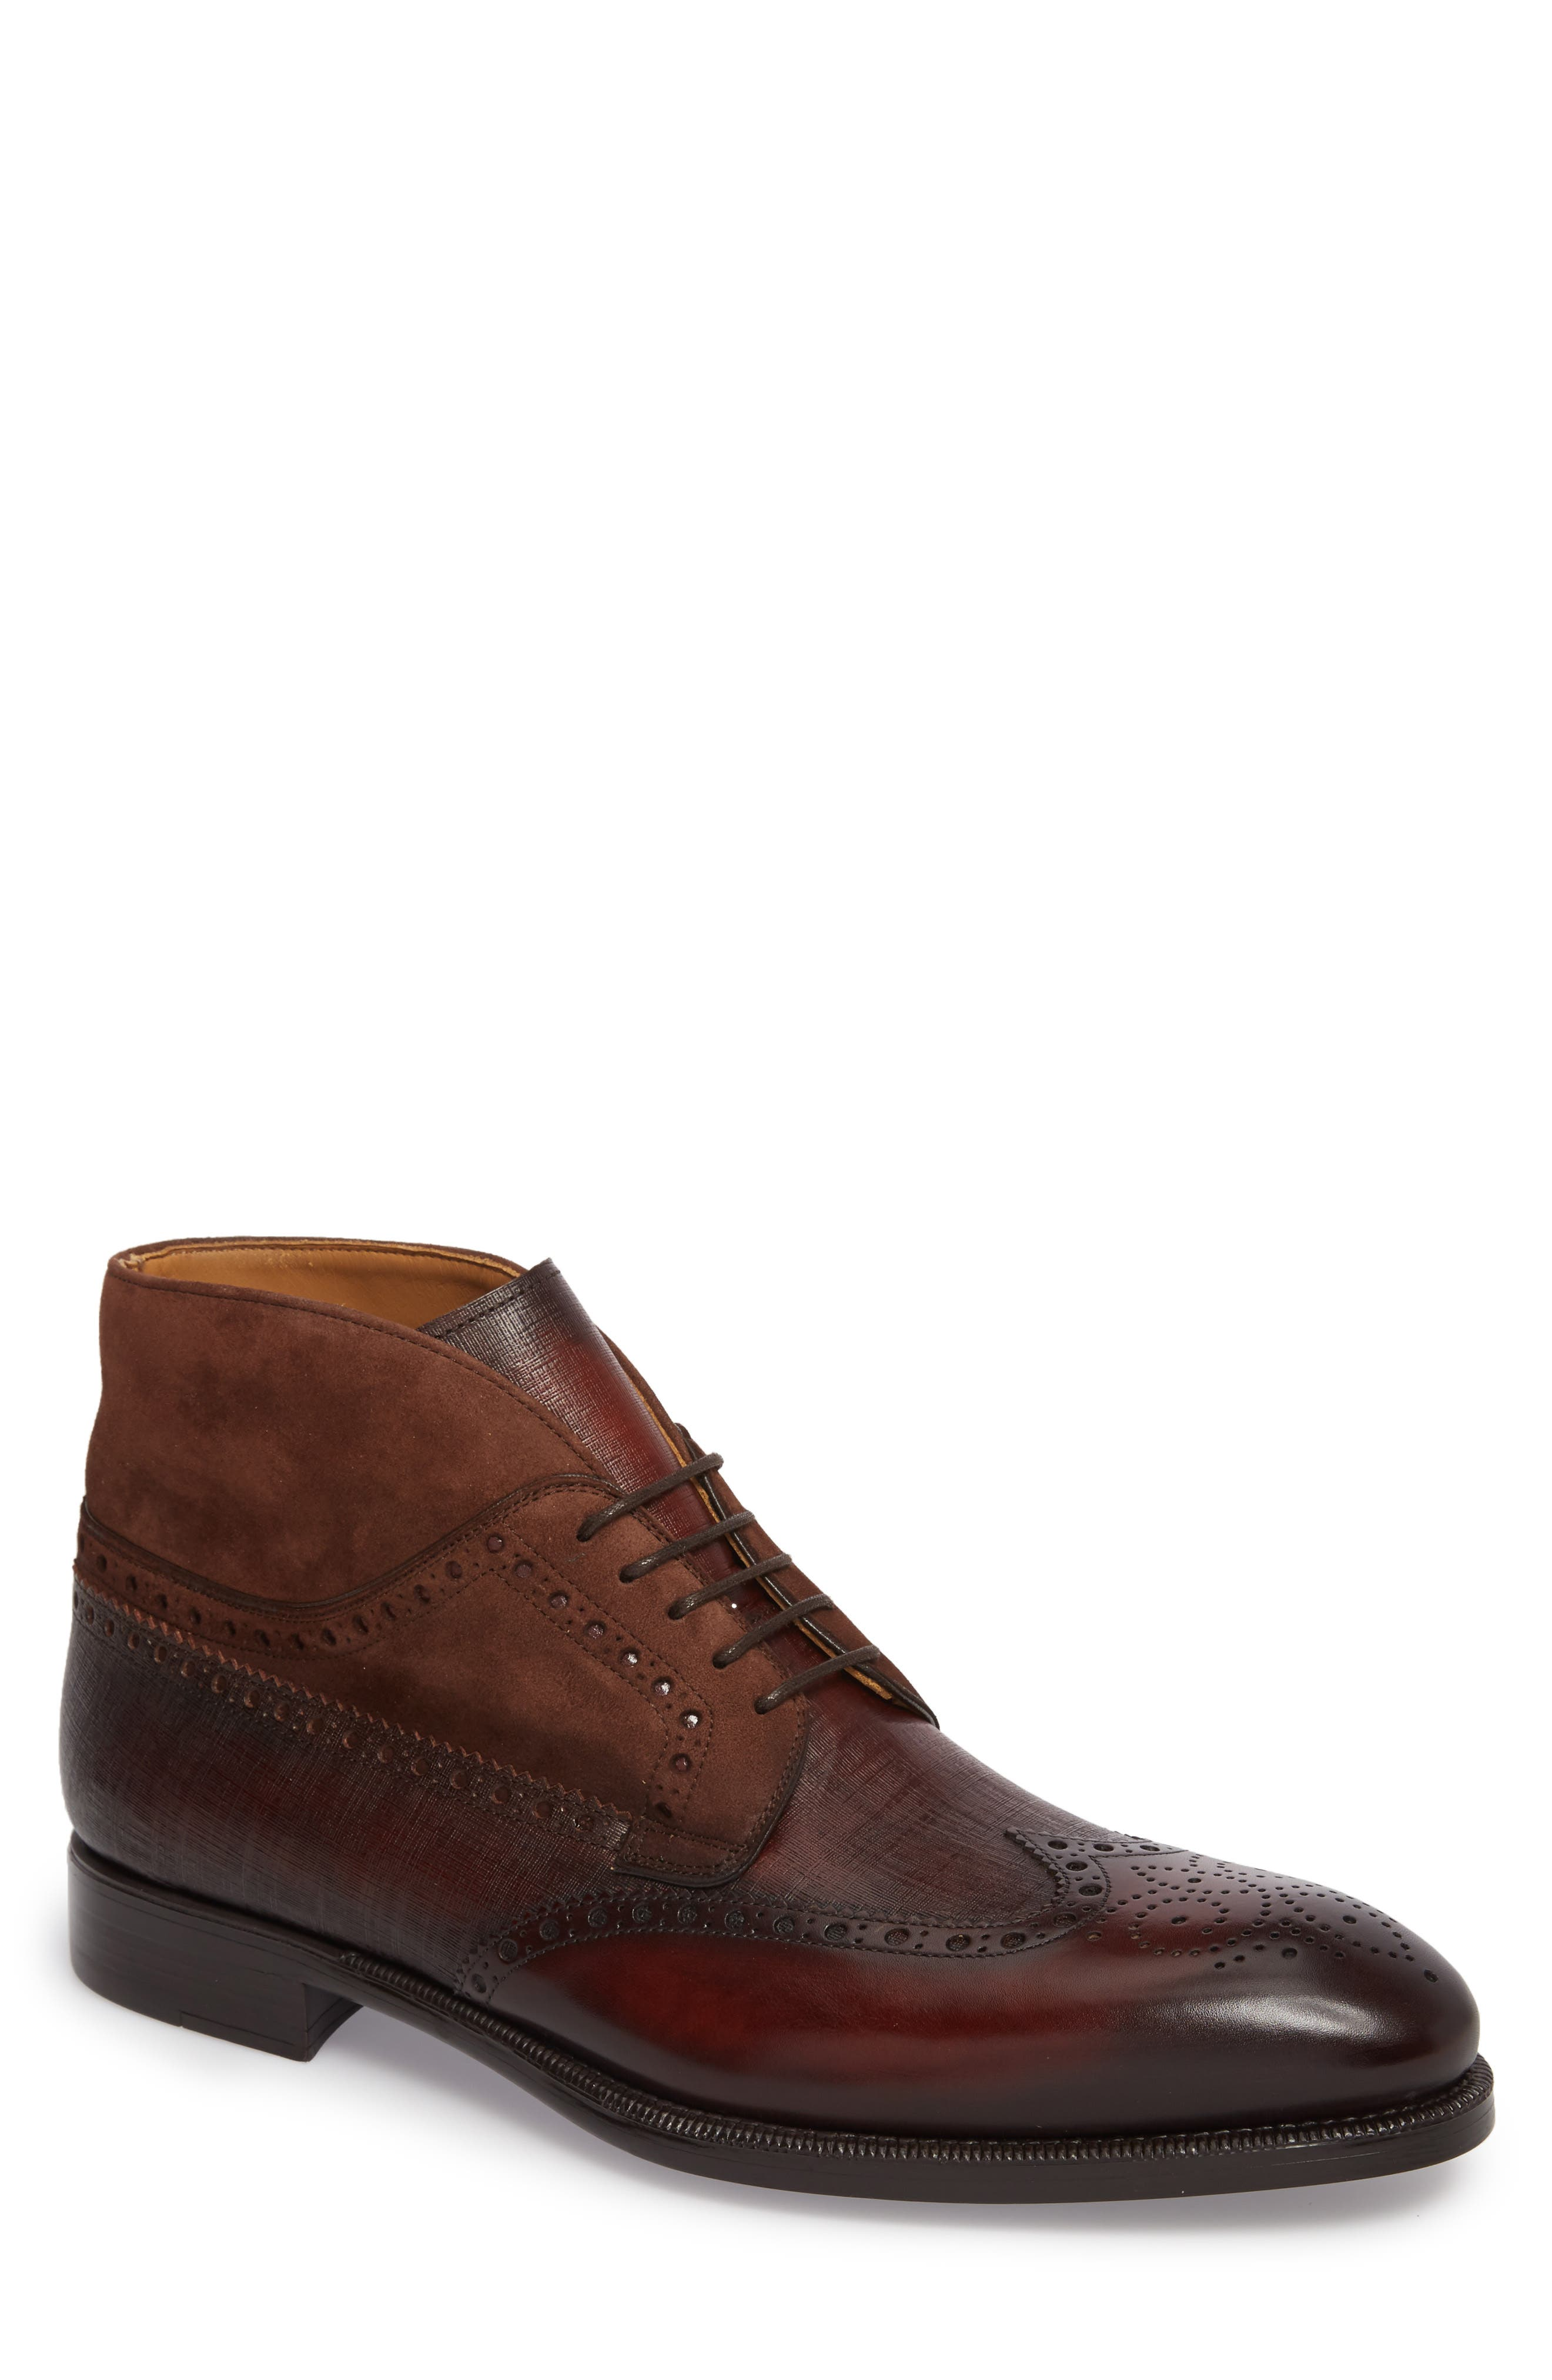 Saxon Wingtip Boot,                         Main,                         color, Mid-Brown Leather